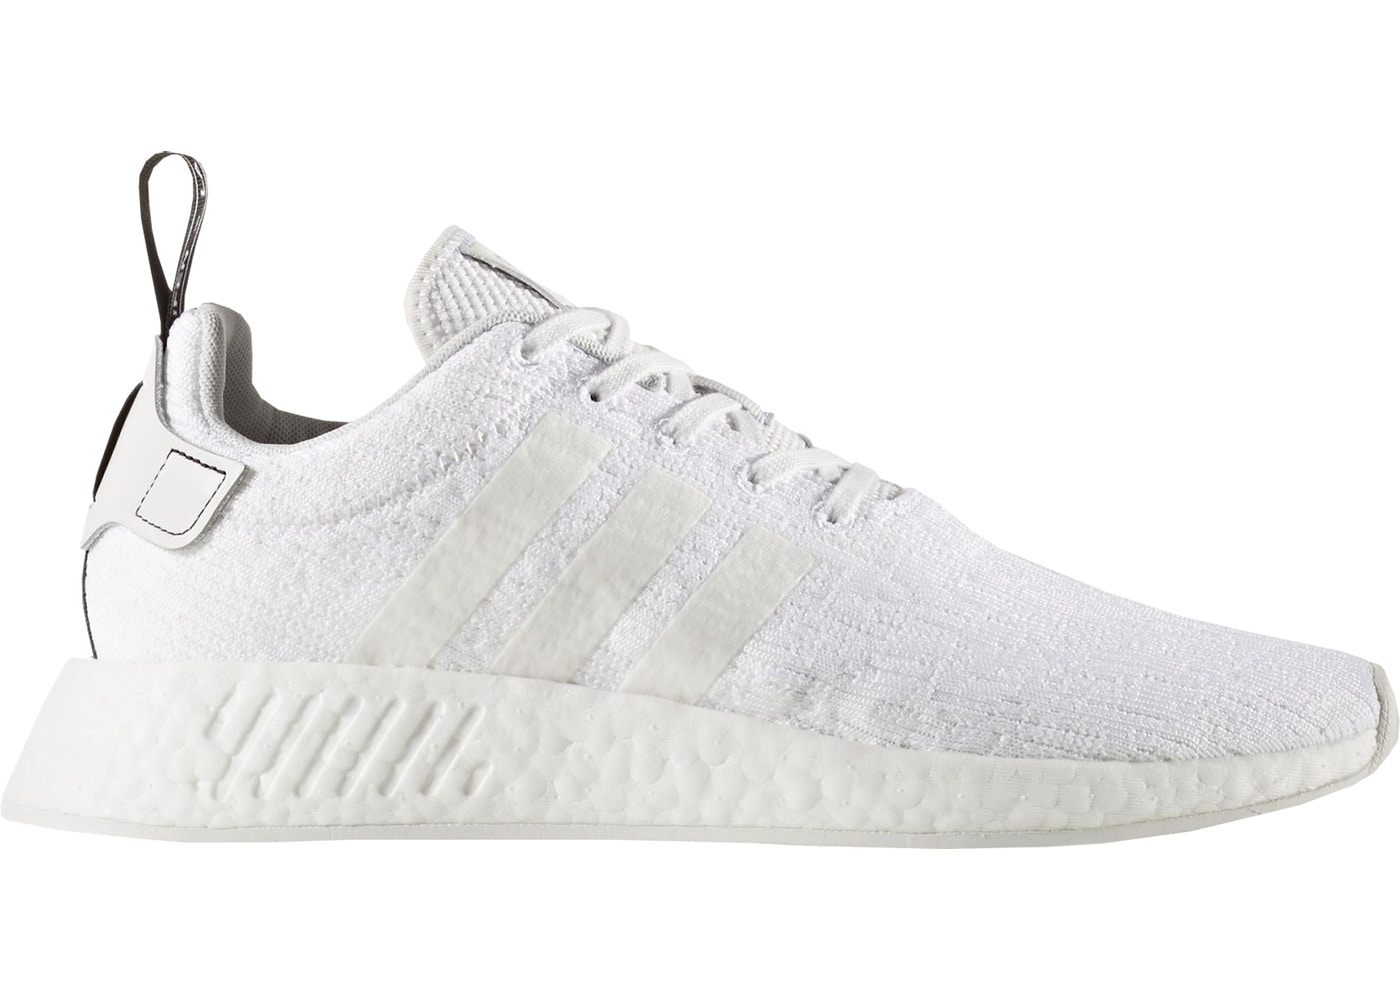 New Mens adidas Originals NMD R2 BOOST Knit Crystal White/Black BY9914 Us 6.5